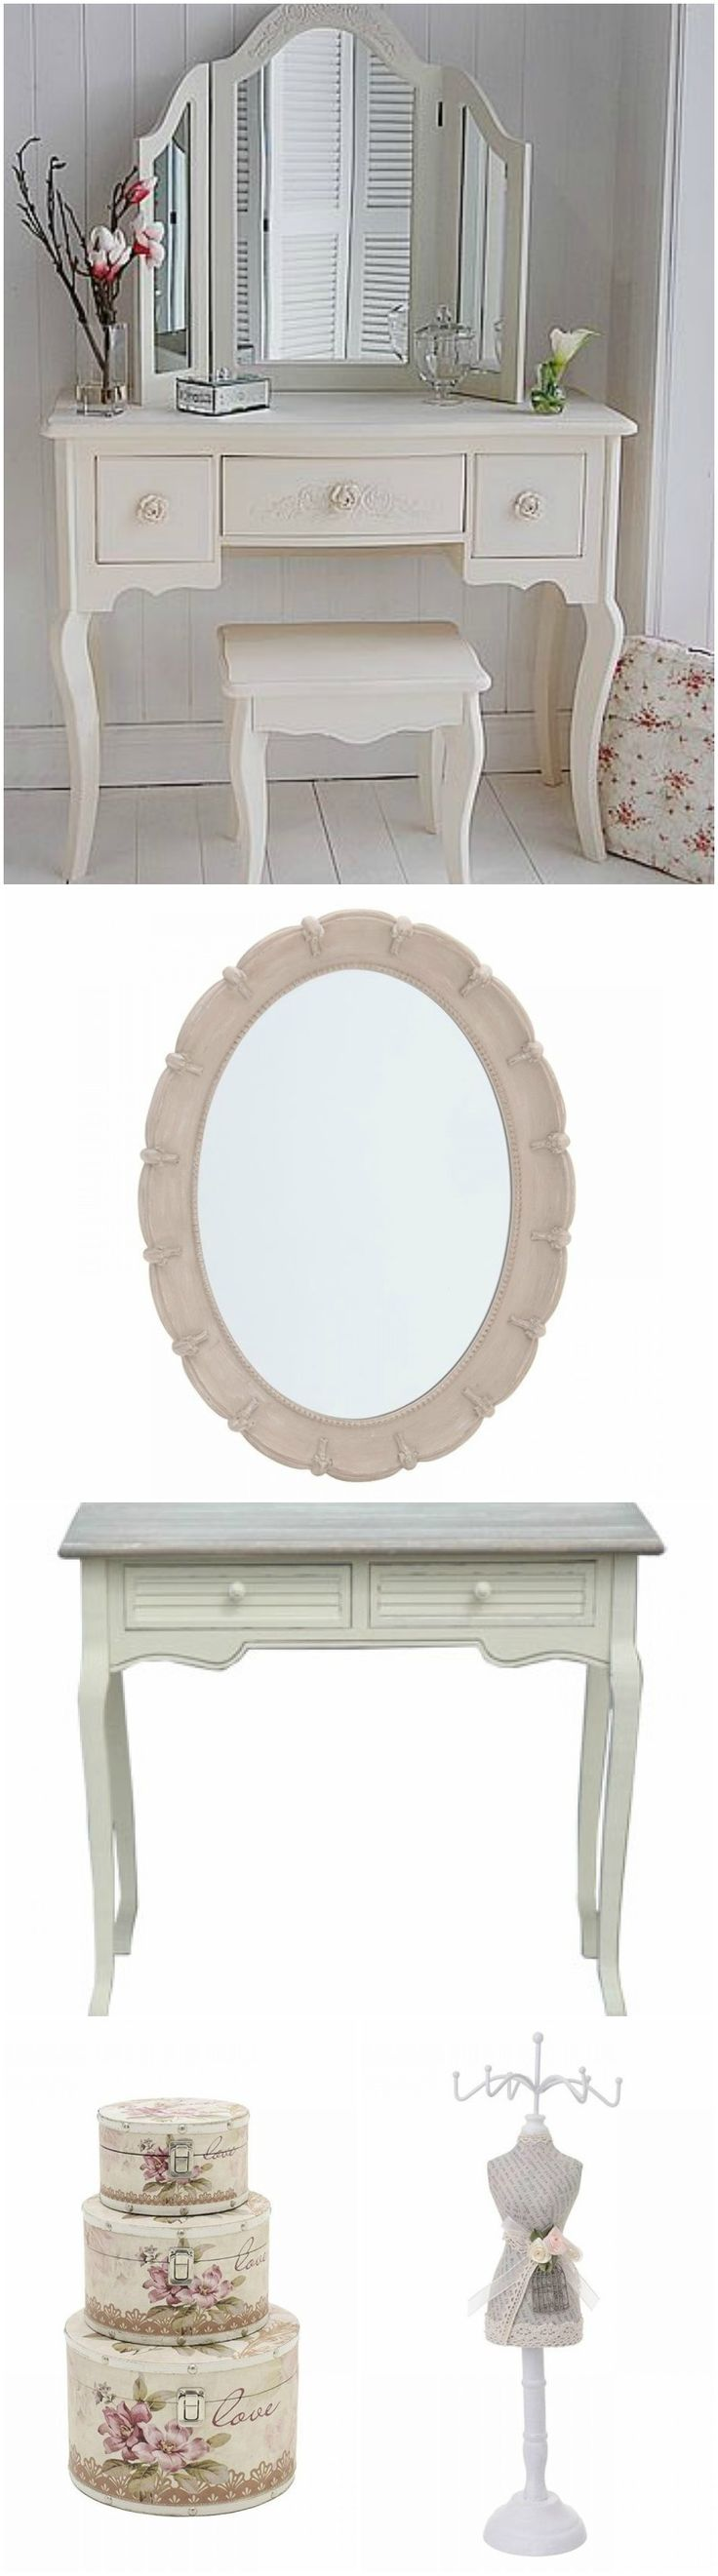 Romantic decor mirror